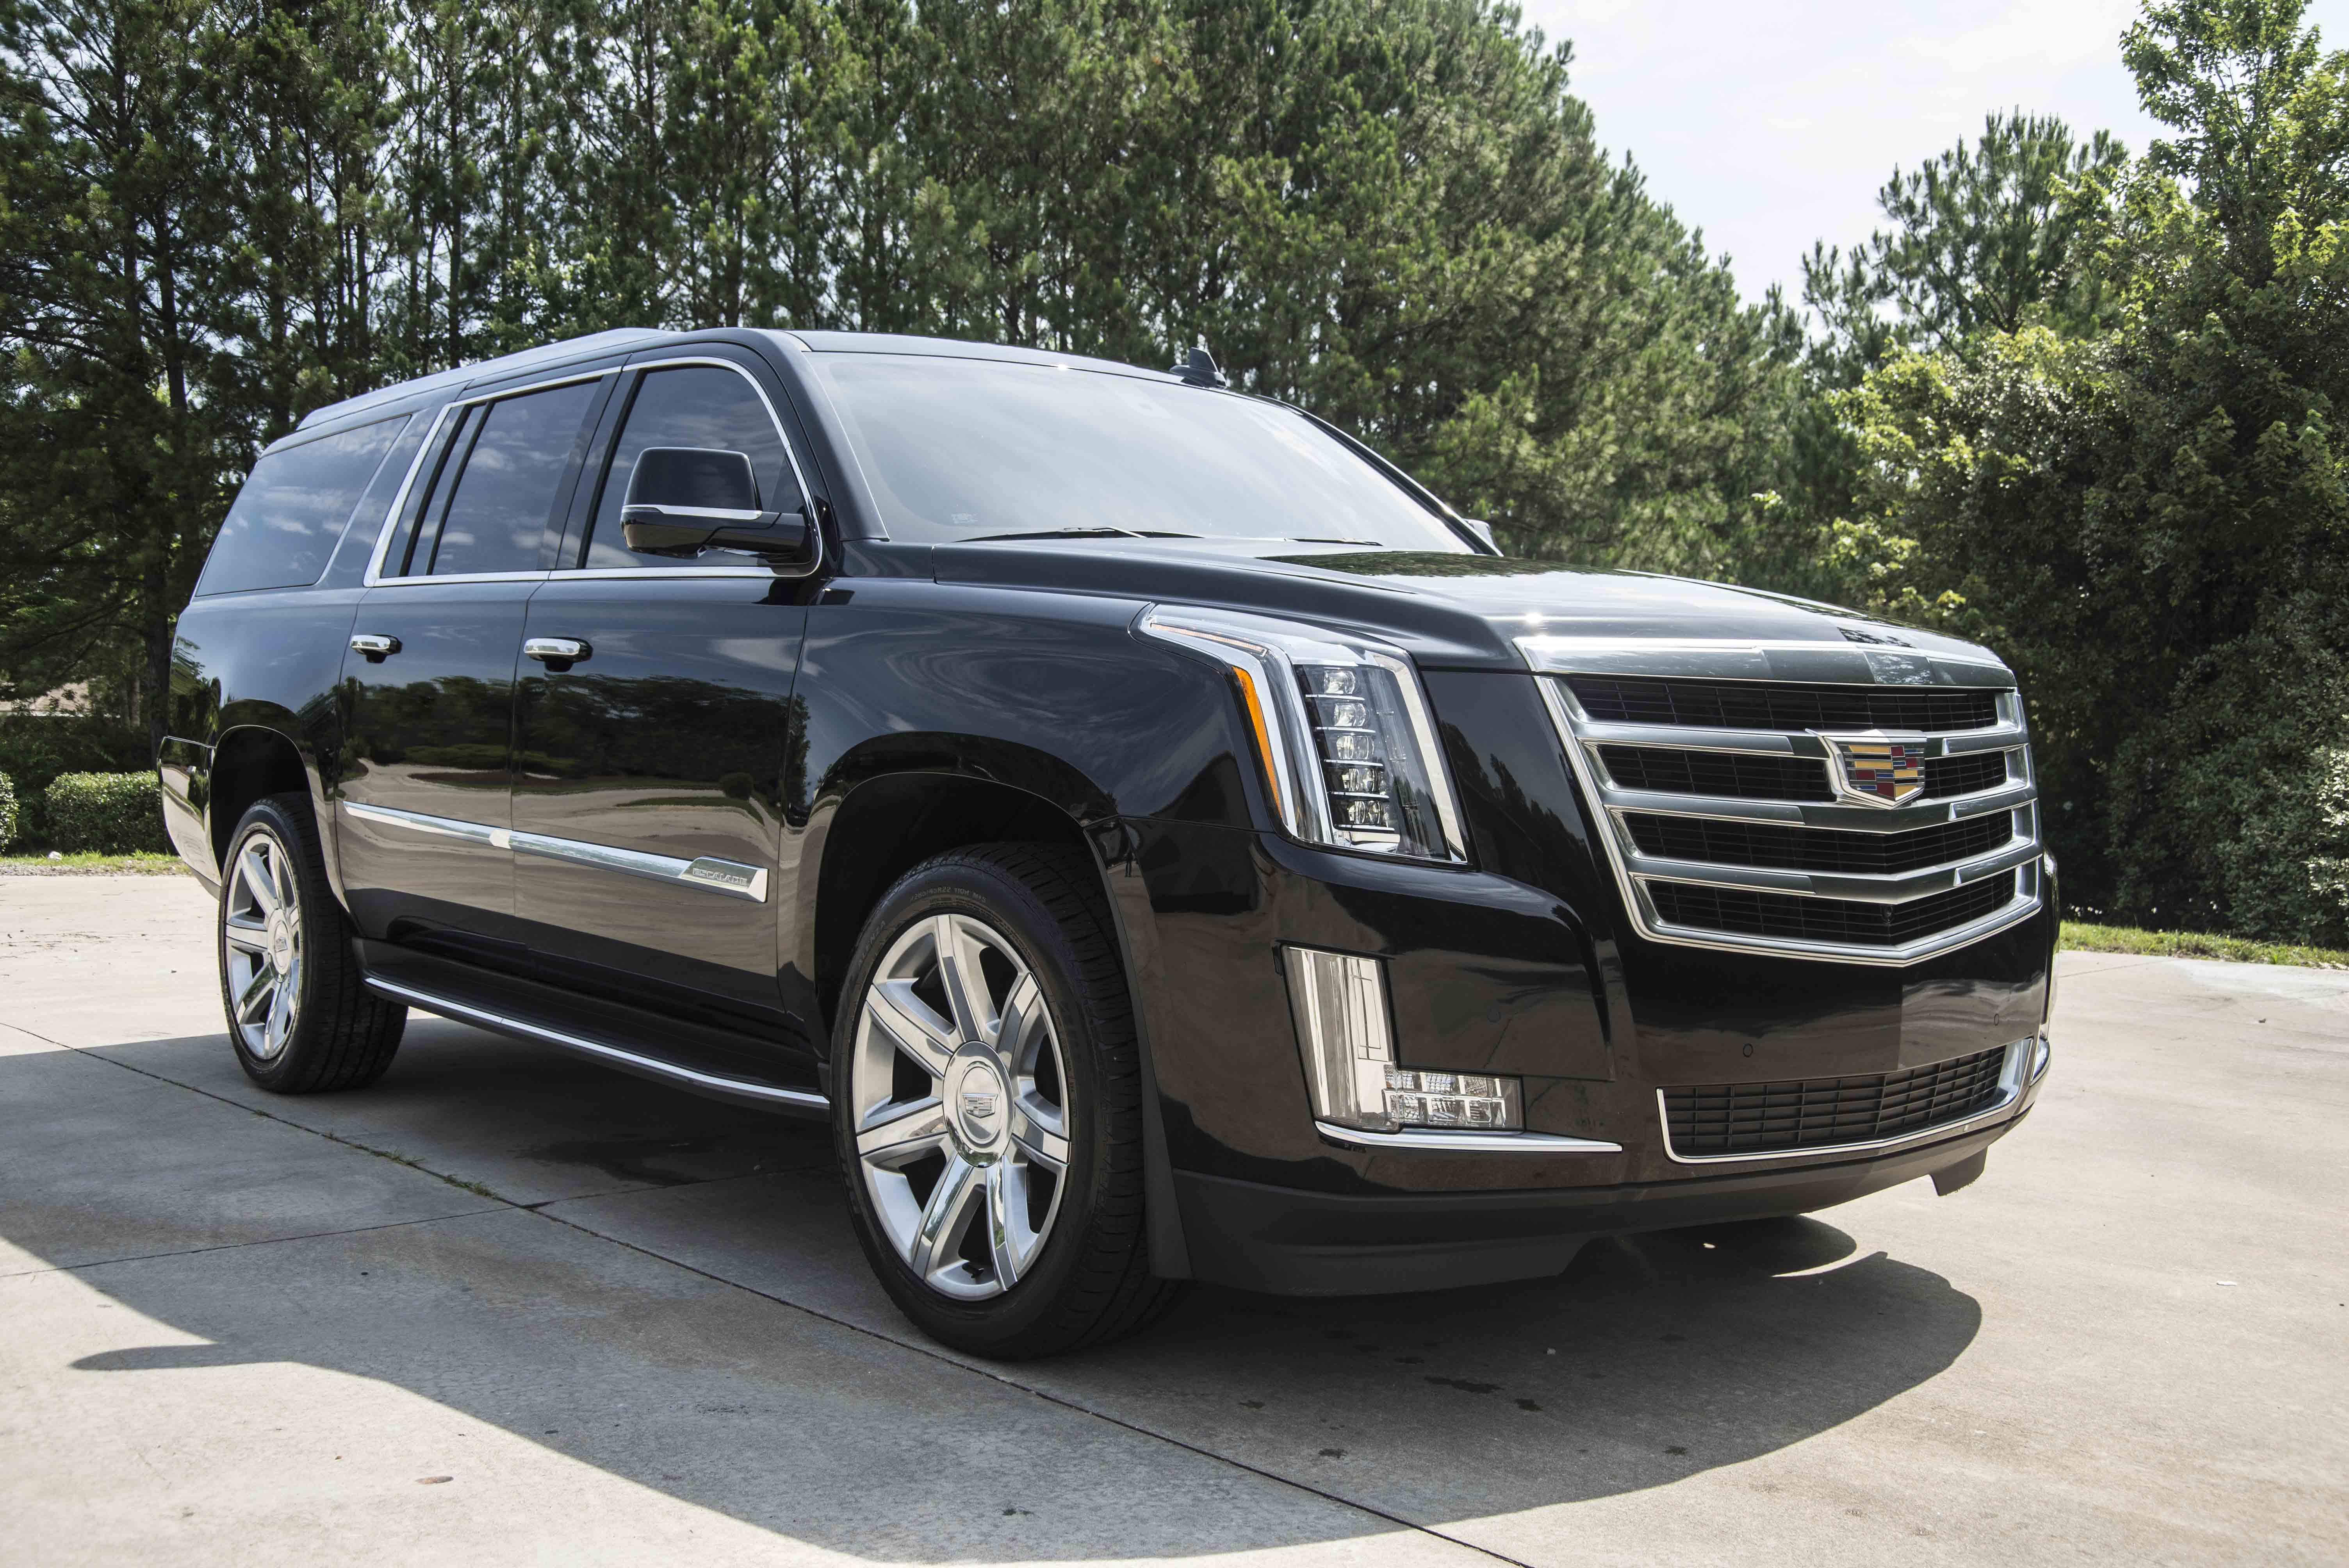 cadillac ecostyle accessories transportation vehicles chauffeured dsc escalade